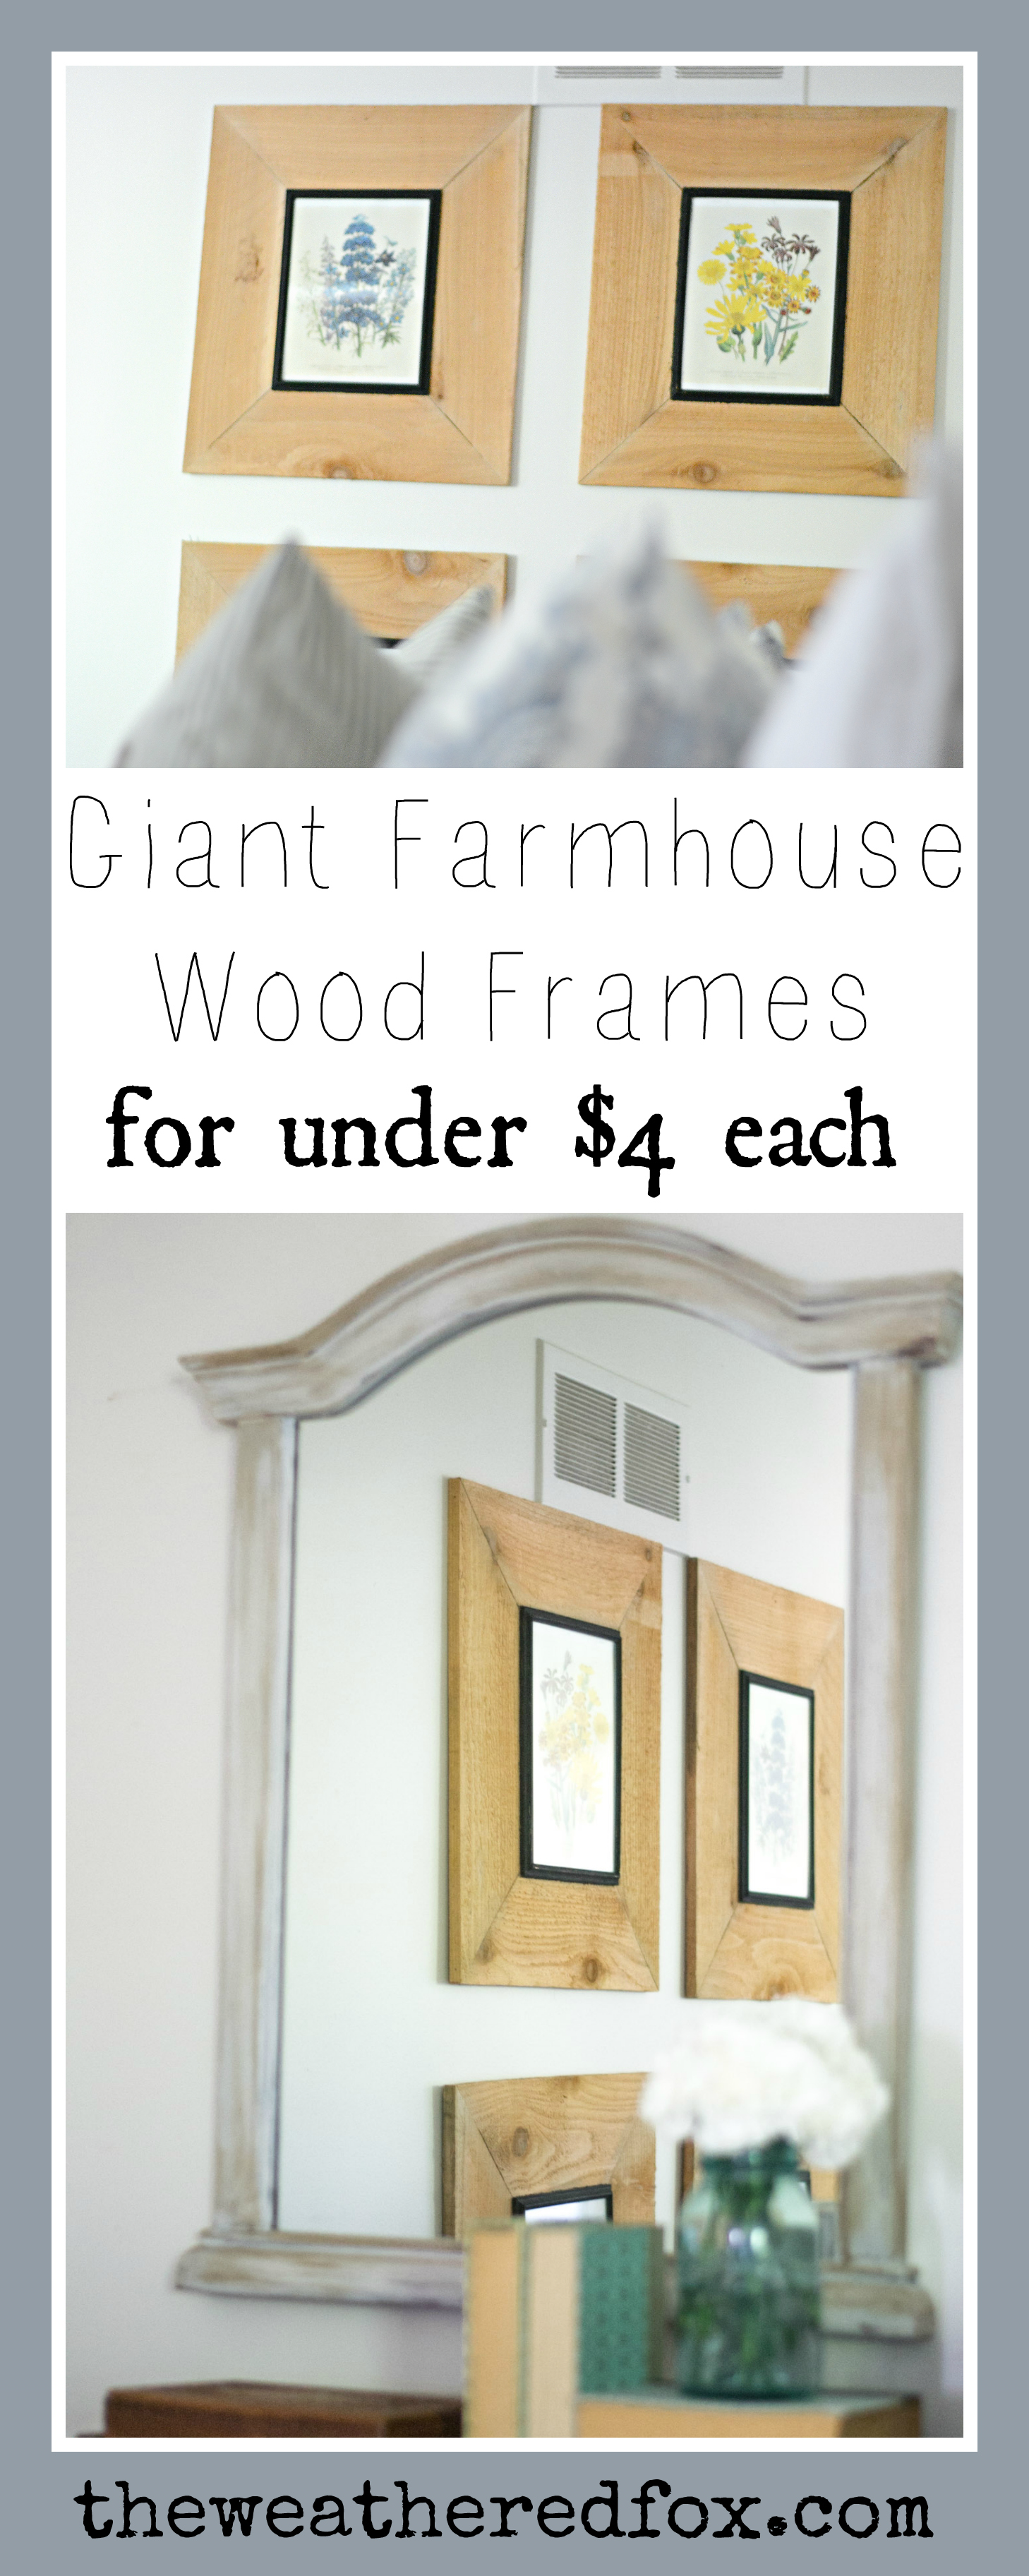 Make Inexpensive Giant Wood Frames for under $4 a piece! DIY Farmhouse Decor